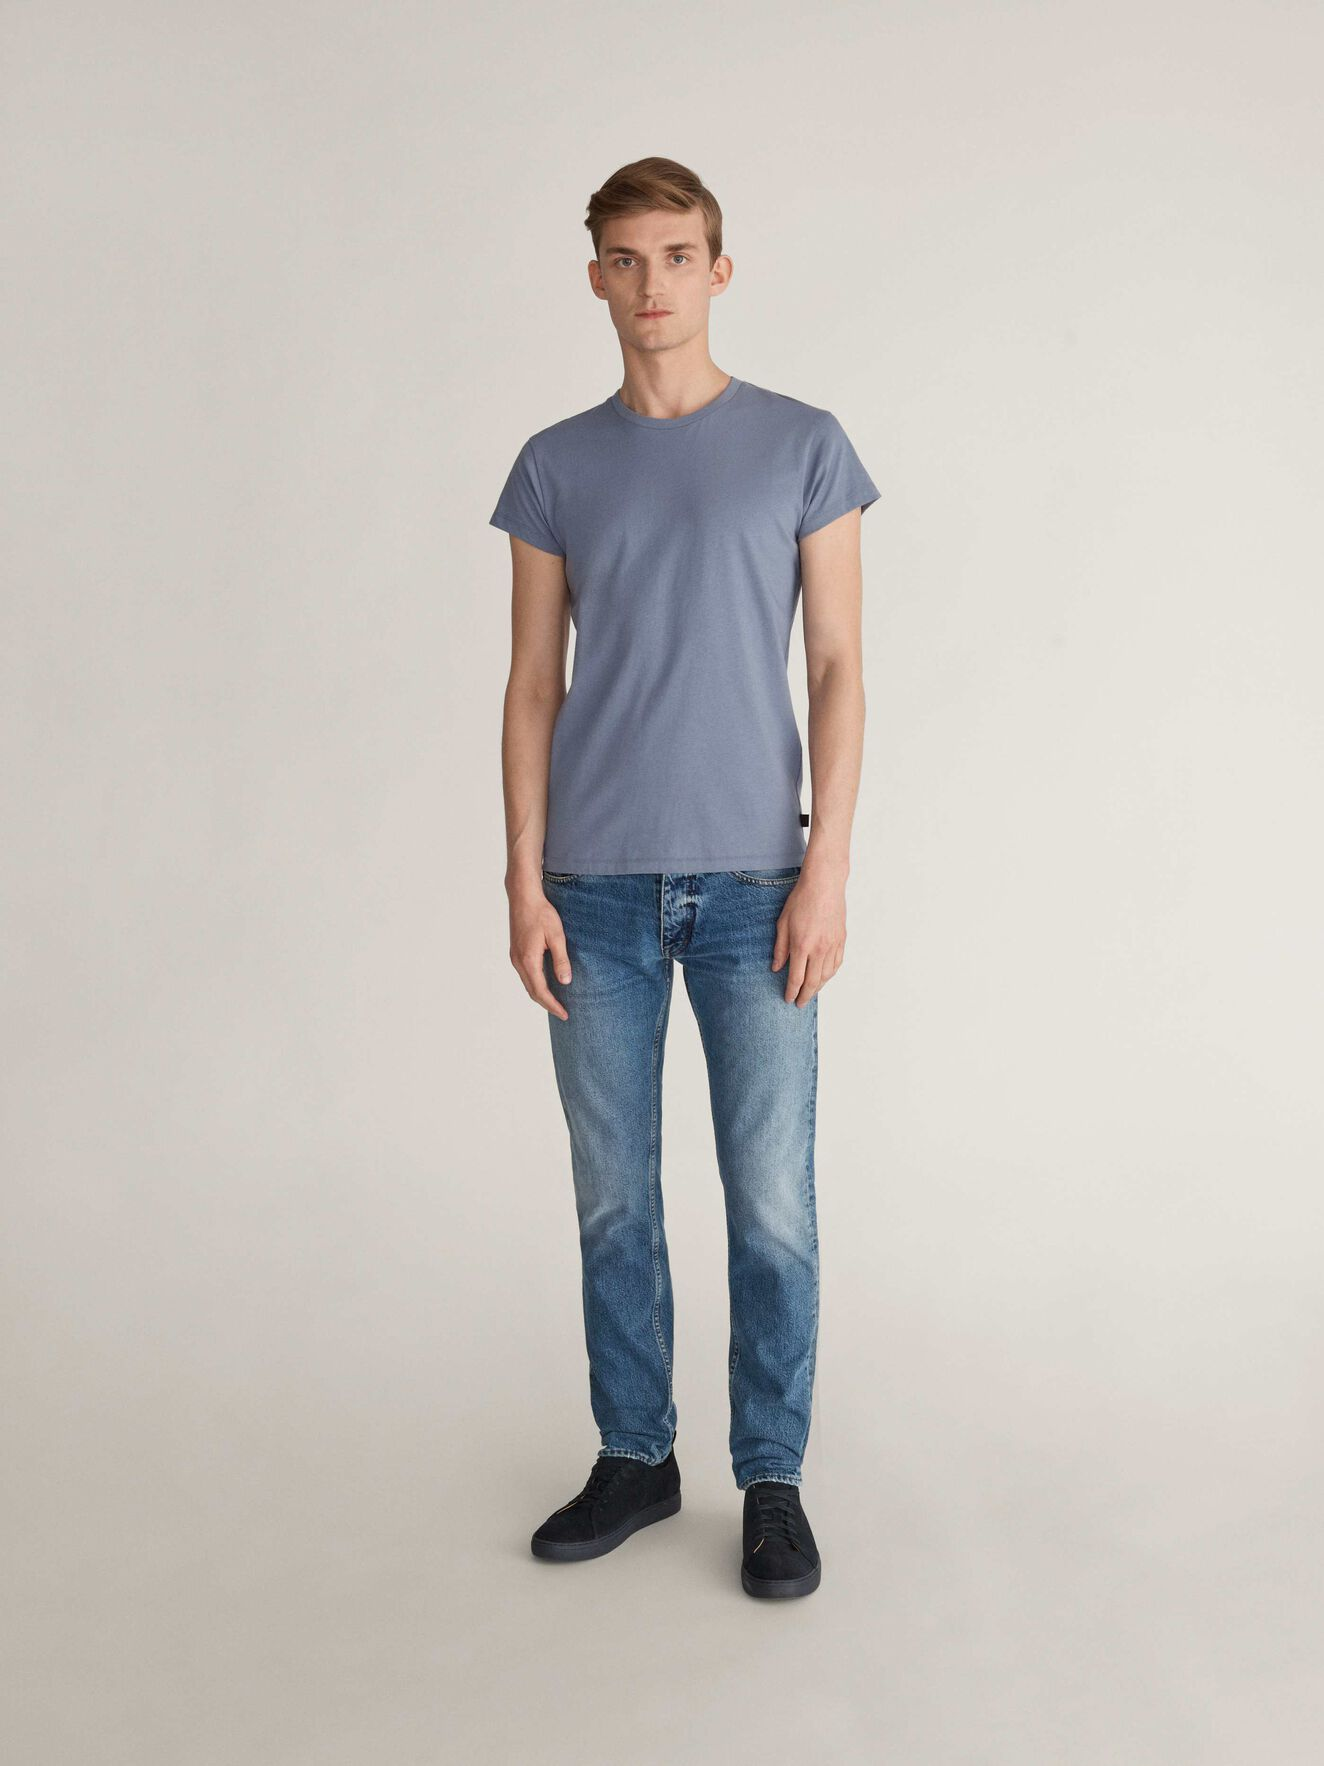 West T-Shirt in Blue Dawn from Tiger of Sweden